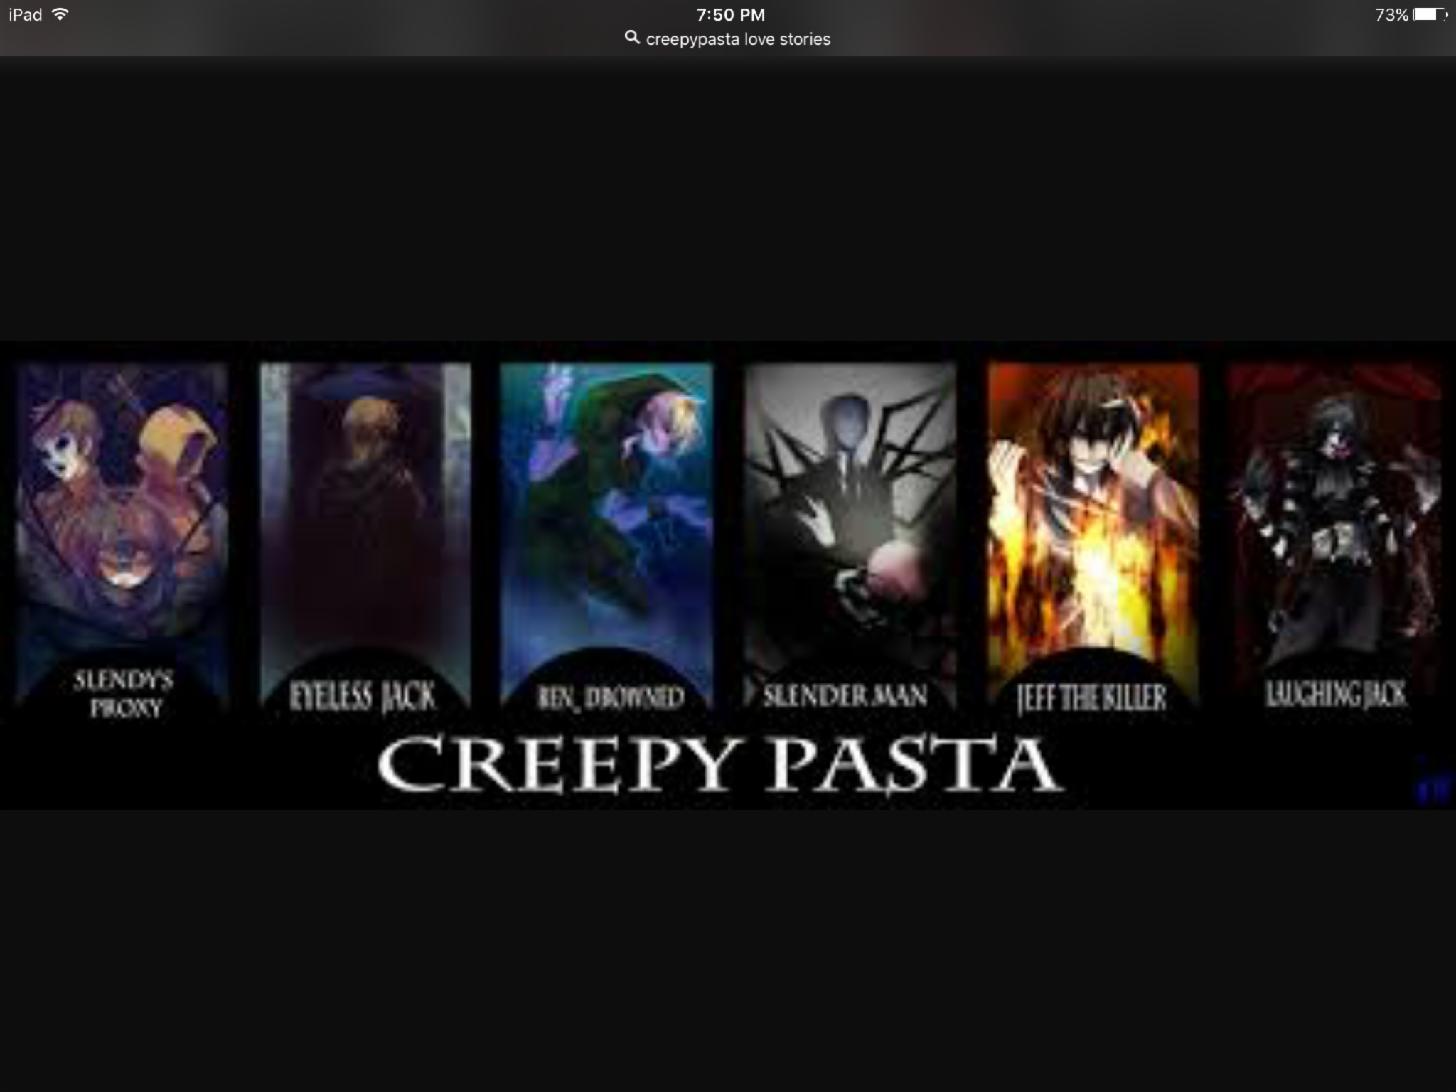 Best main Creepypasta?